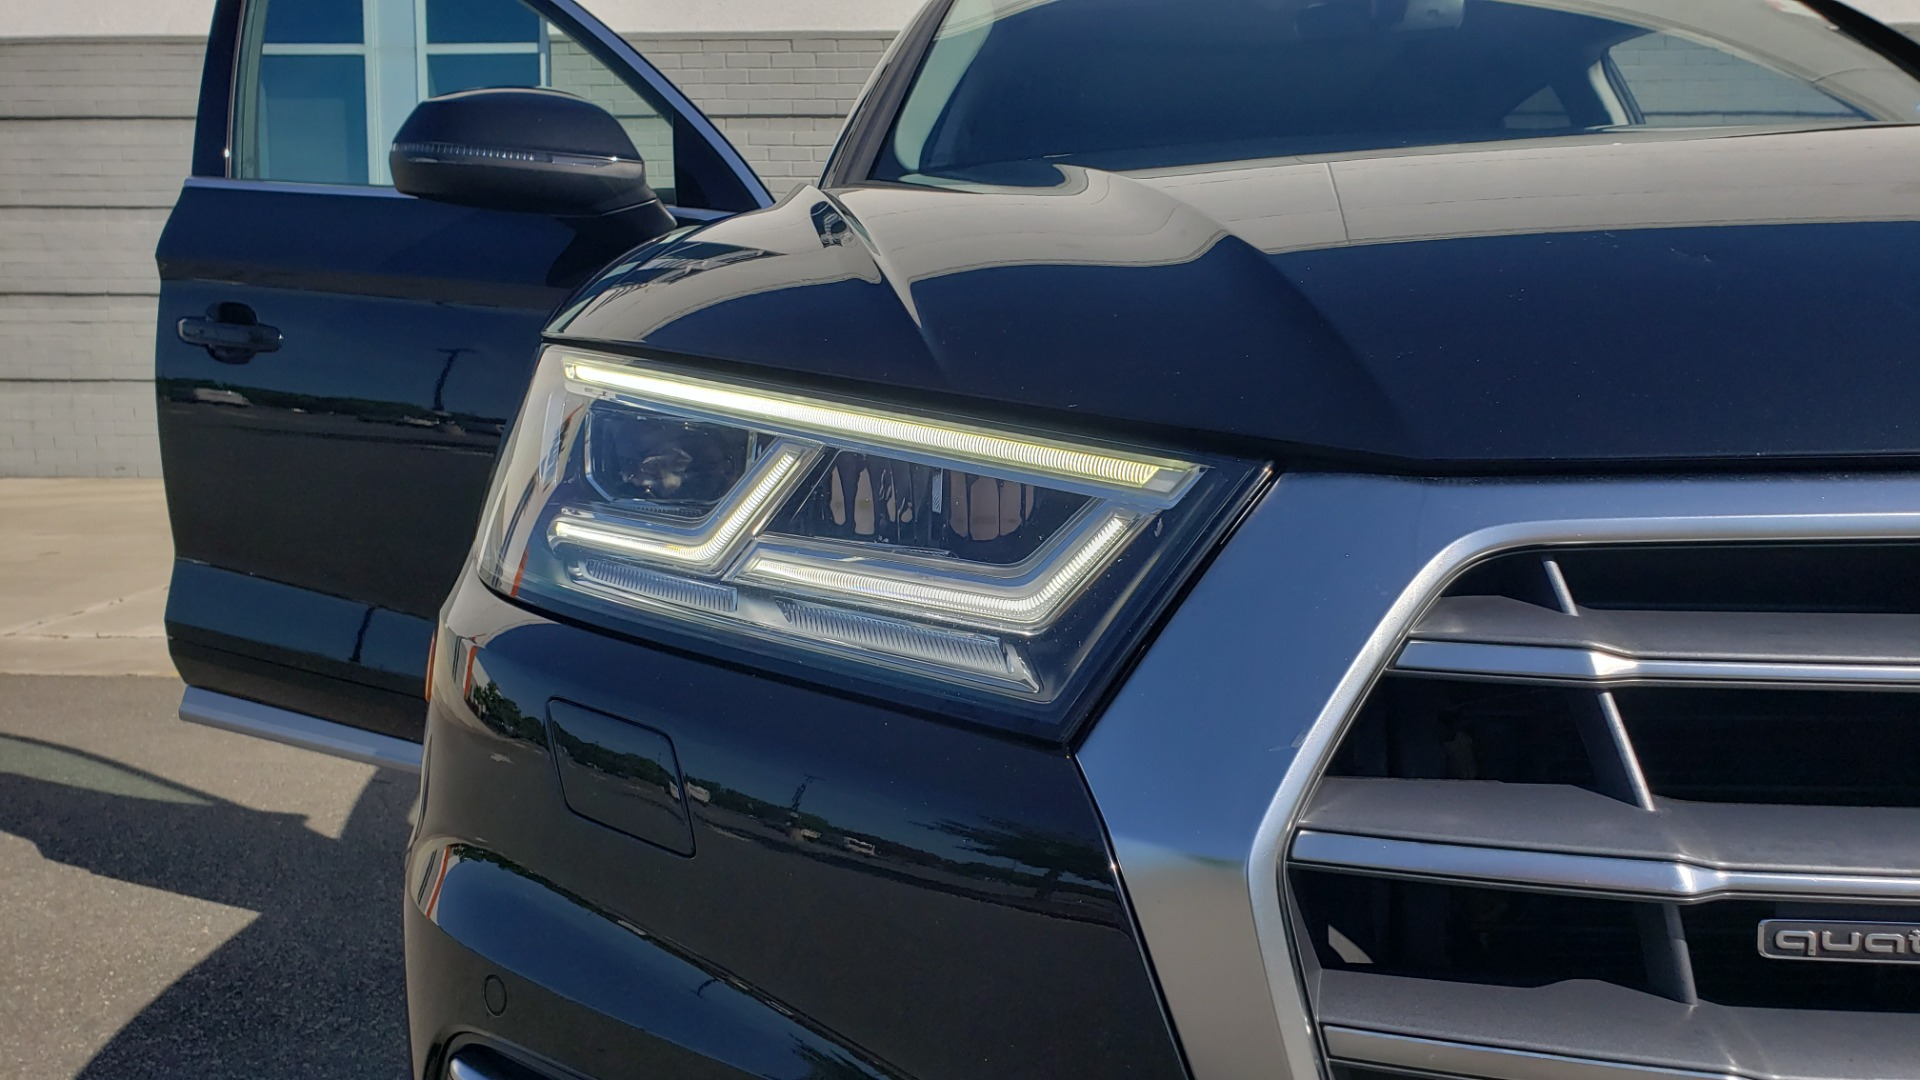 Used 2018 Audi Q5 PREMIUM PLUS / NAV / B&O SND / CLD WTHR / SUNROOF / REARVIEW for sale Sold at Formula Imports in Charlotte NC 28227 22